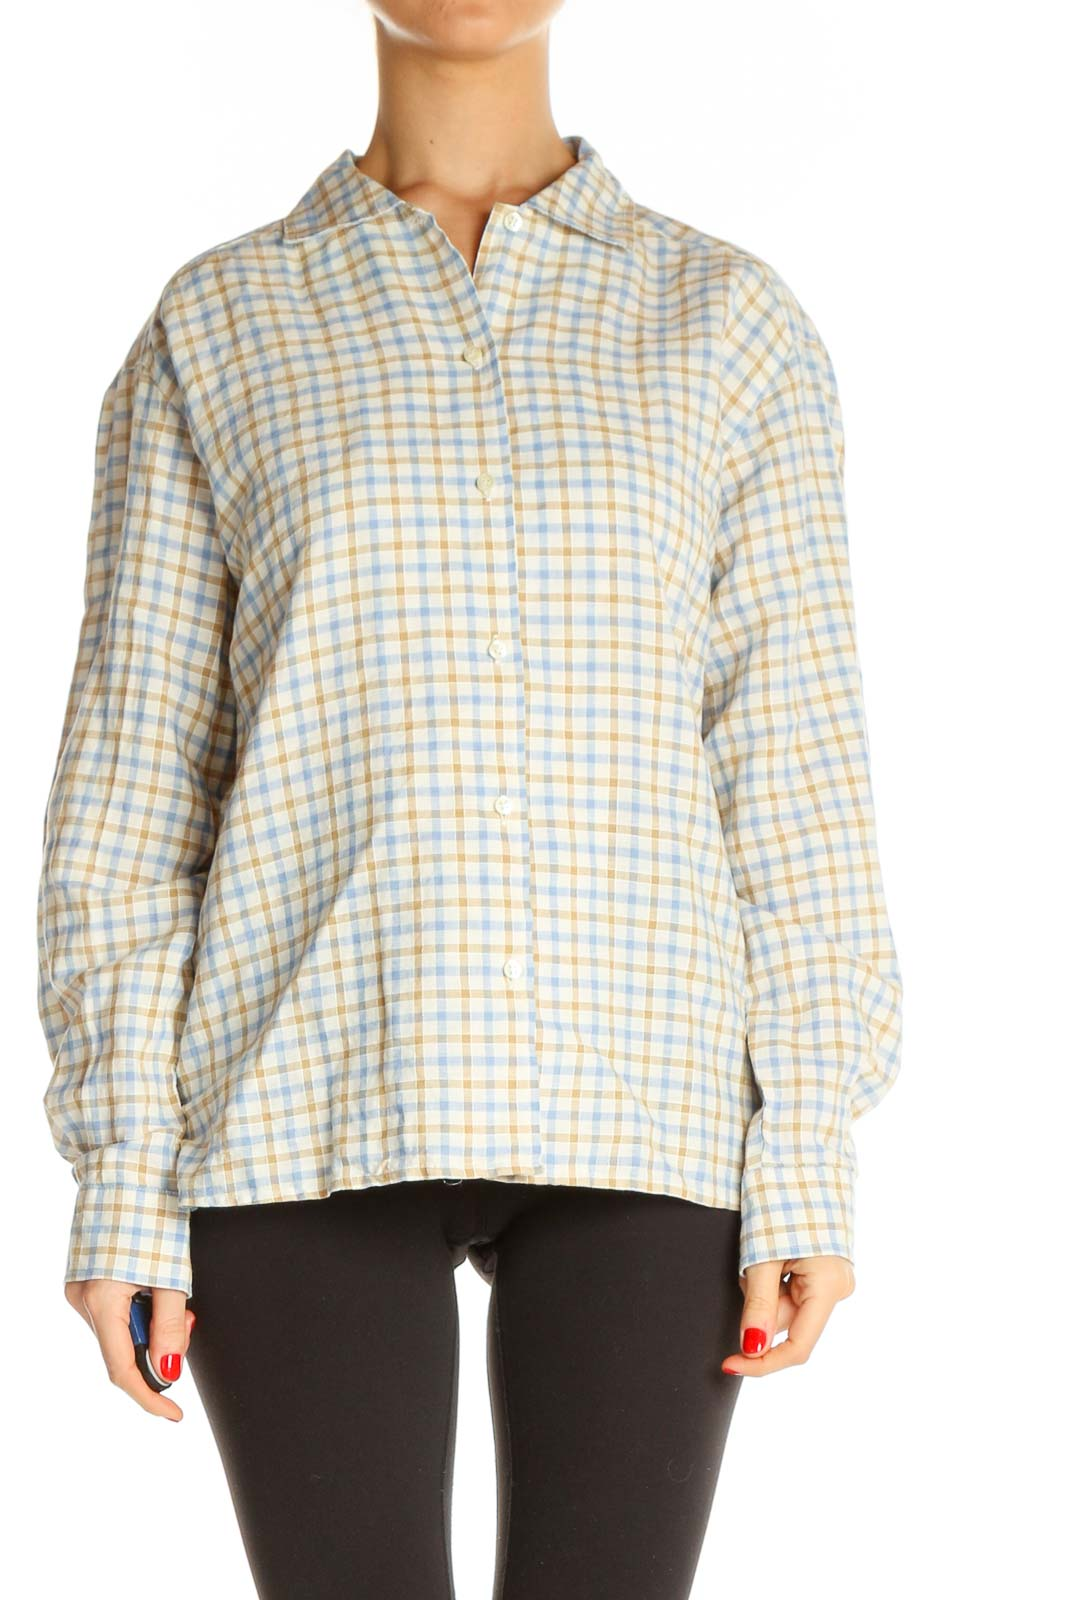 Beige Checkered All Day Wear Shirt Front